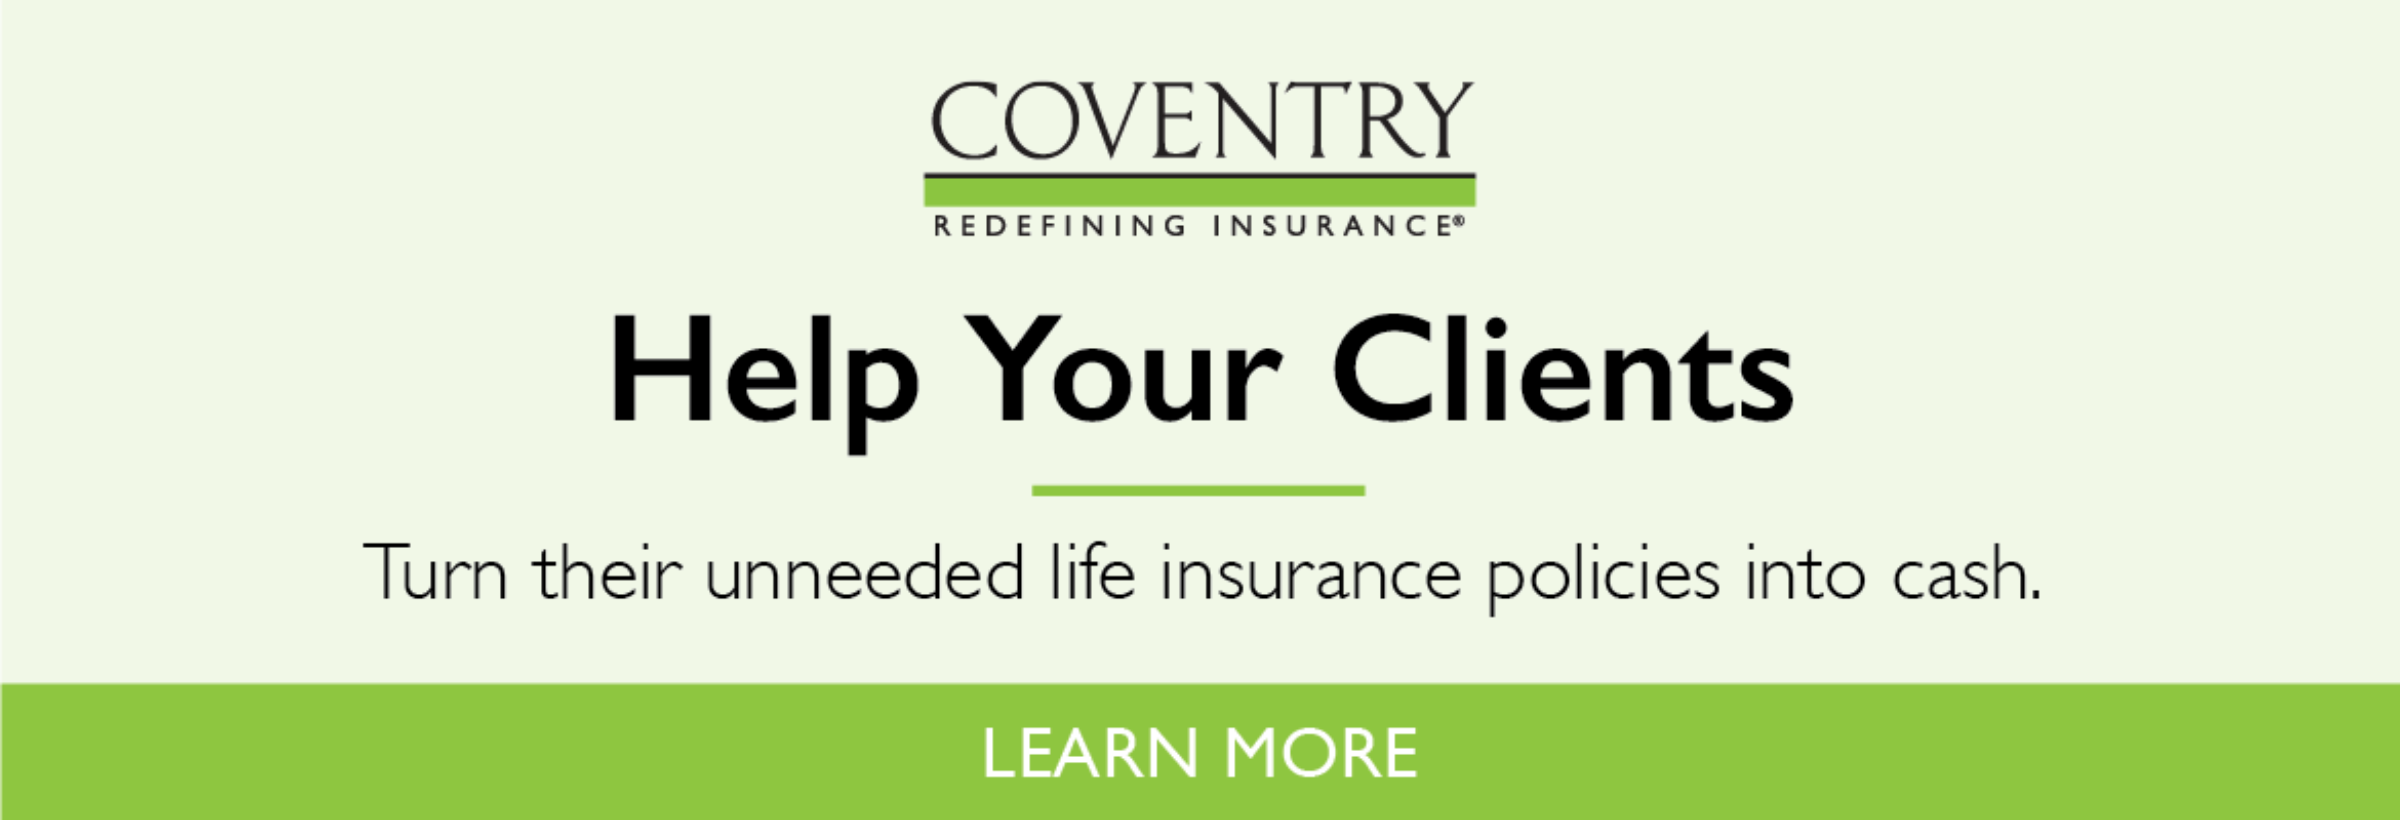 Coventry-Banner-Ad-5.6.2021